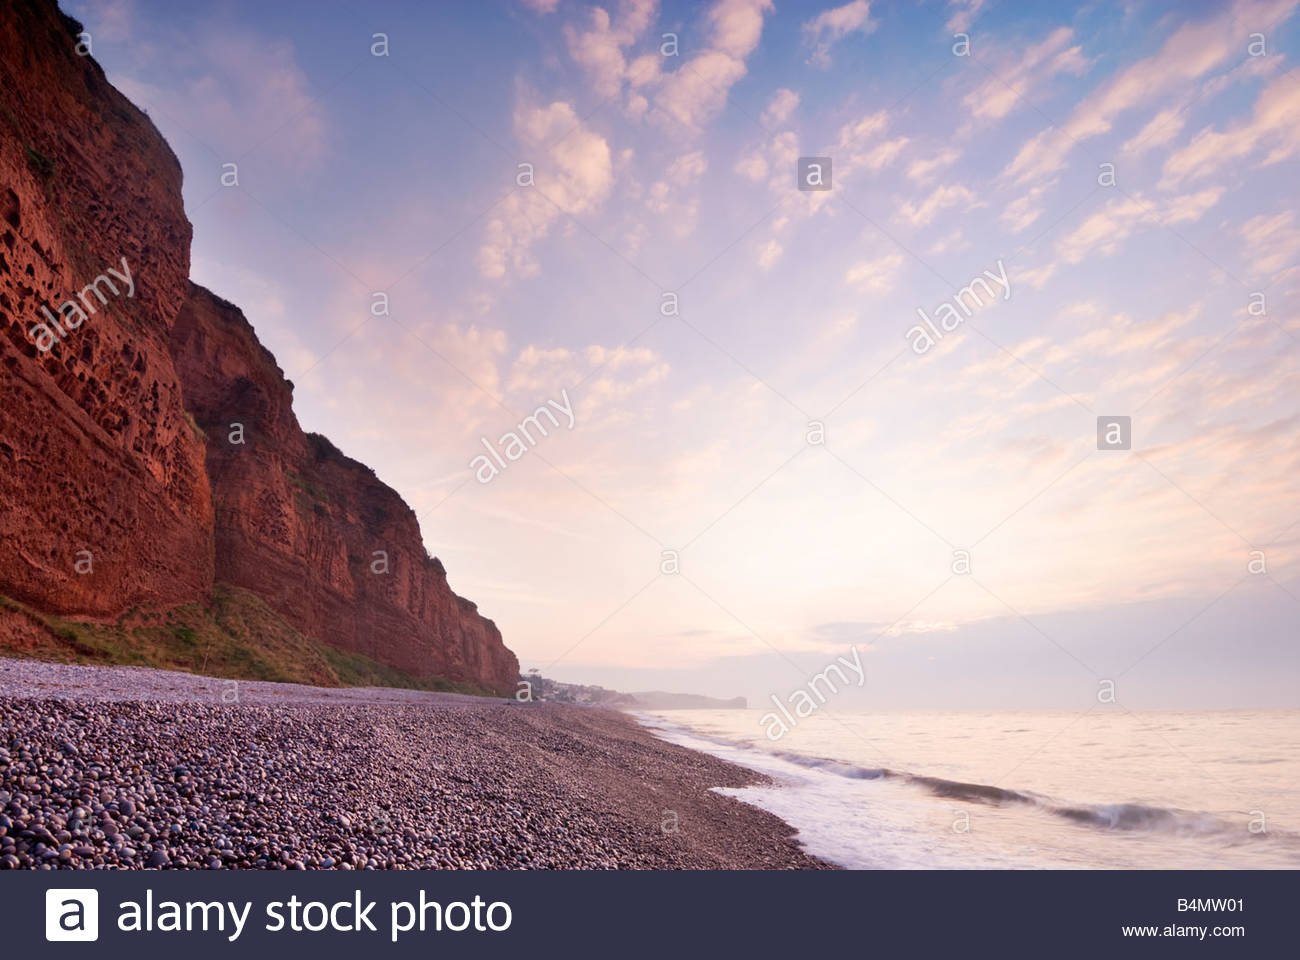 The beach at Budleigh Salterton, East Devon, at sunrise. - Stock Image